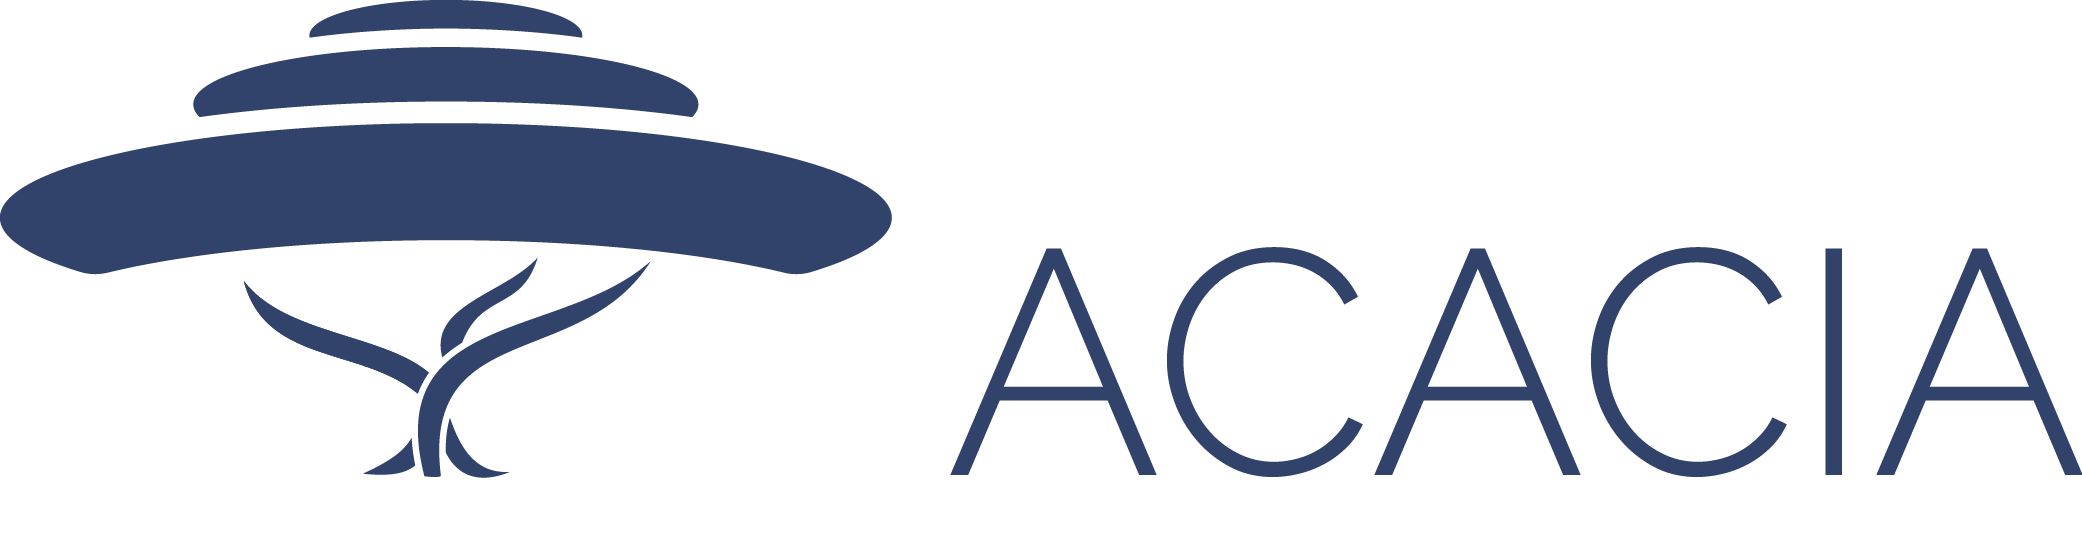 ACACIA-Working-Logo.png